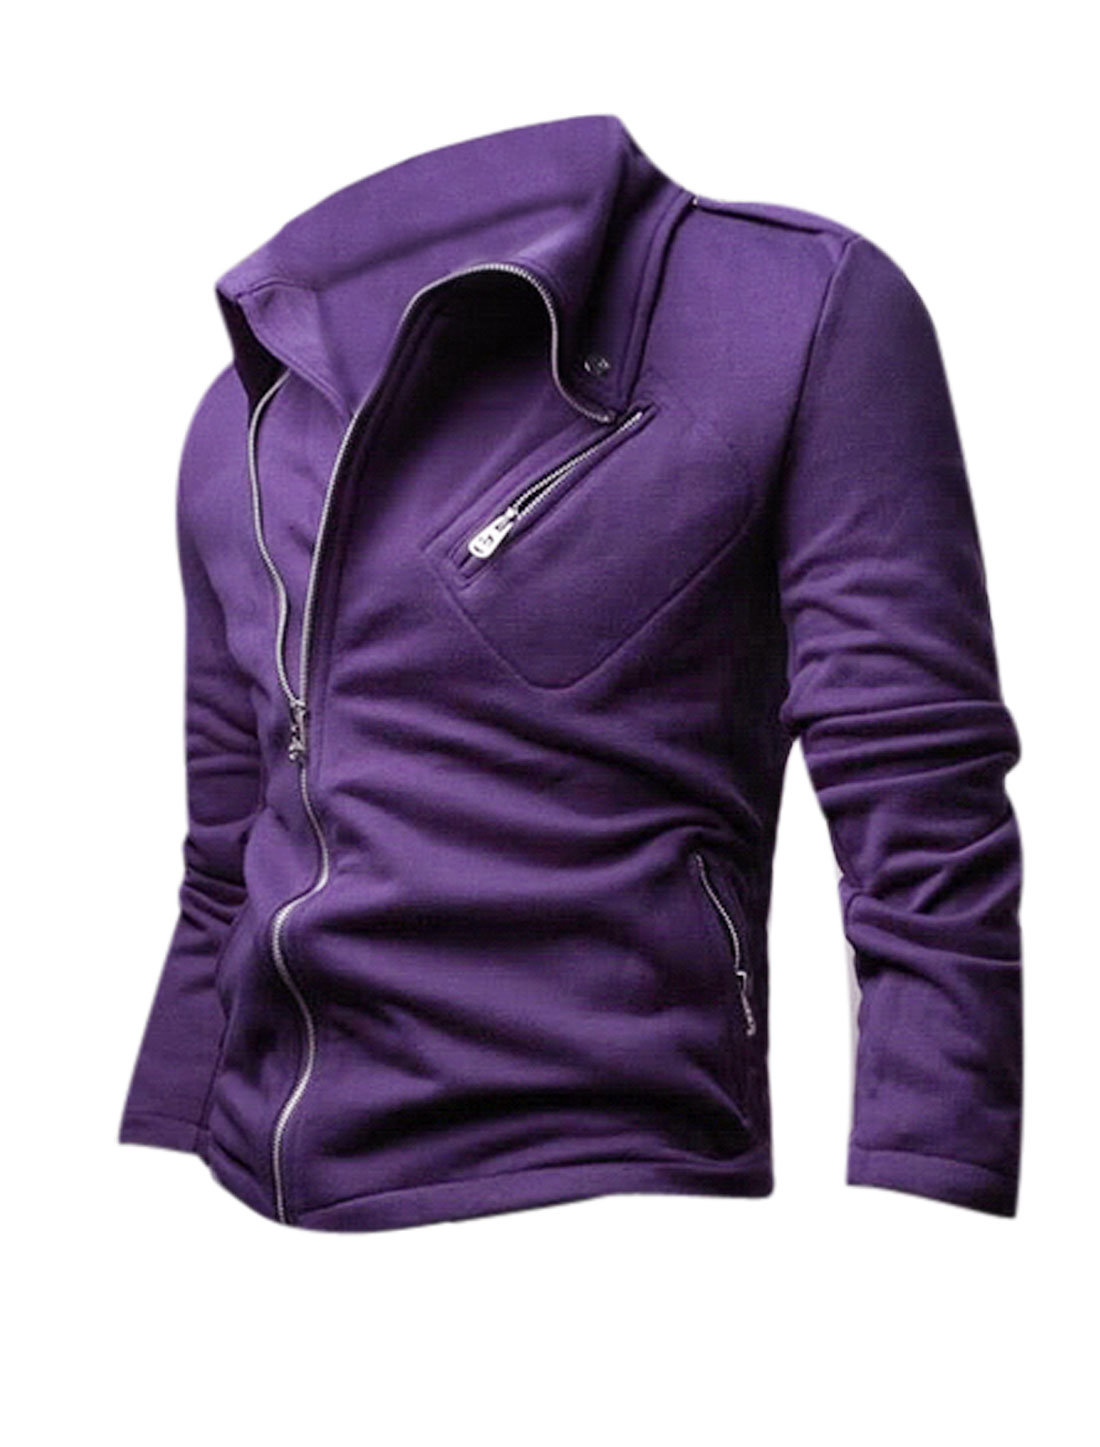 Long Sleeves One Chest Pocket Zip Up Purple Casual Jacket for Men M